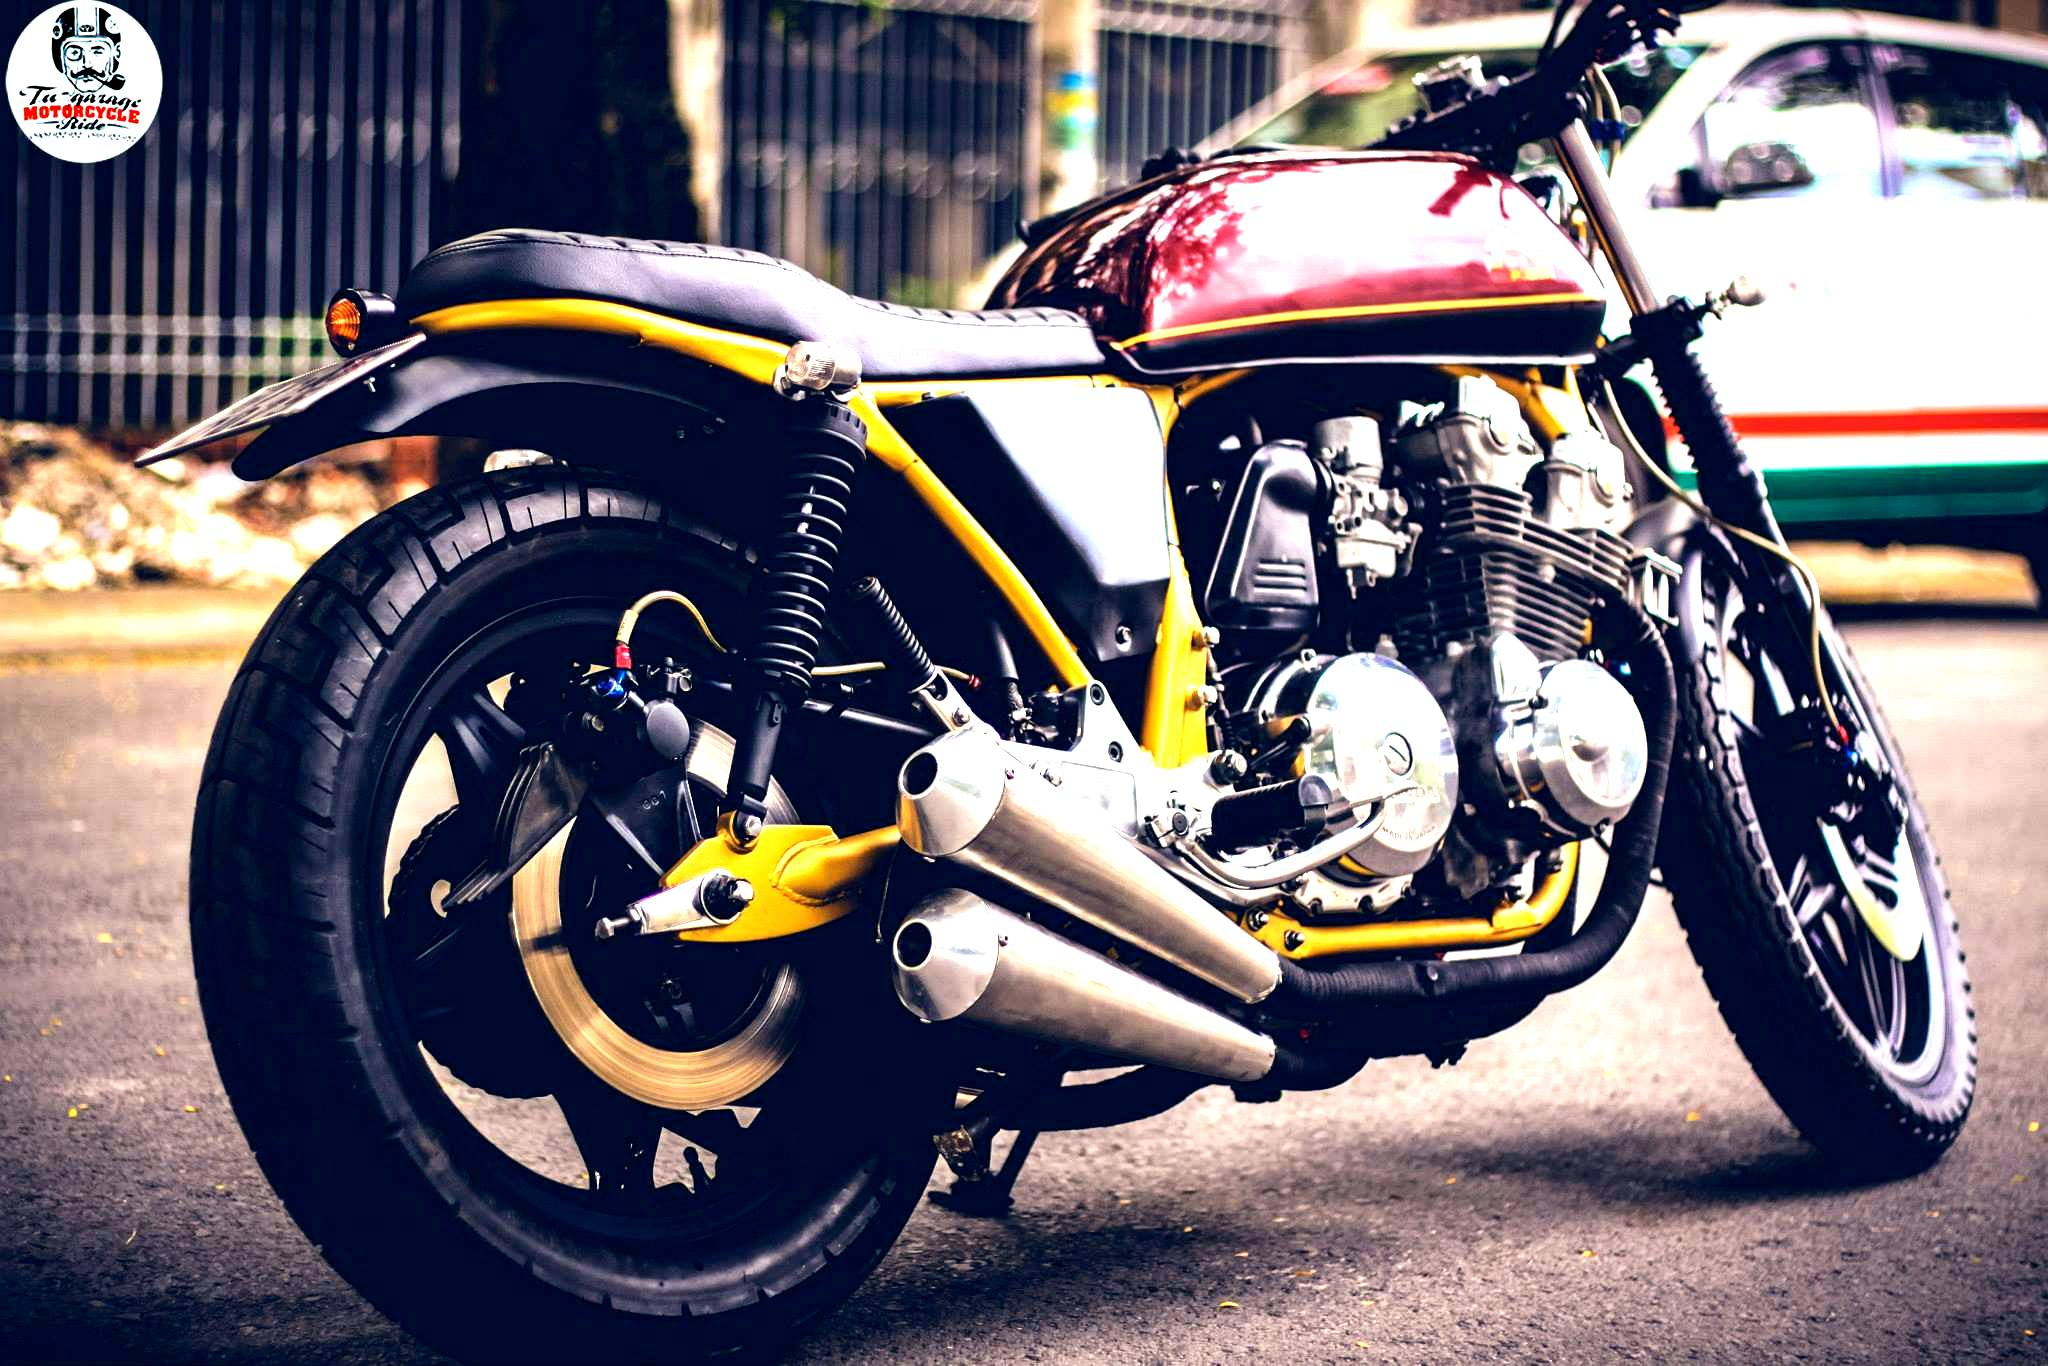 Street Tracker Honda Cb750f Shows More Vietnamese Custom